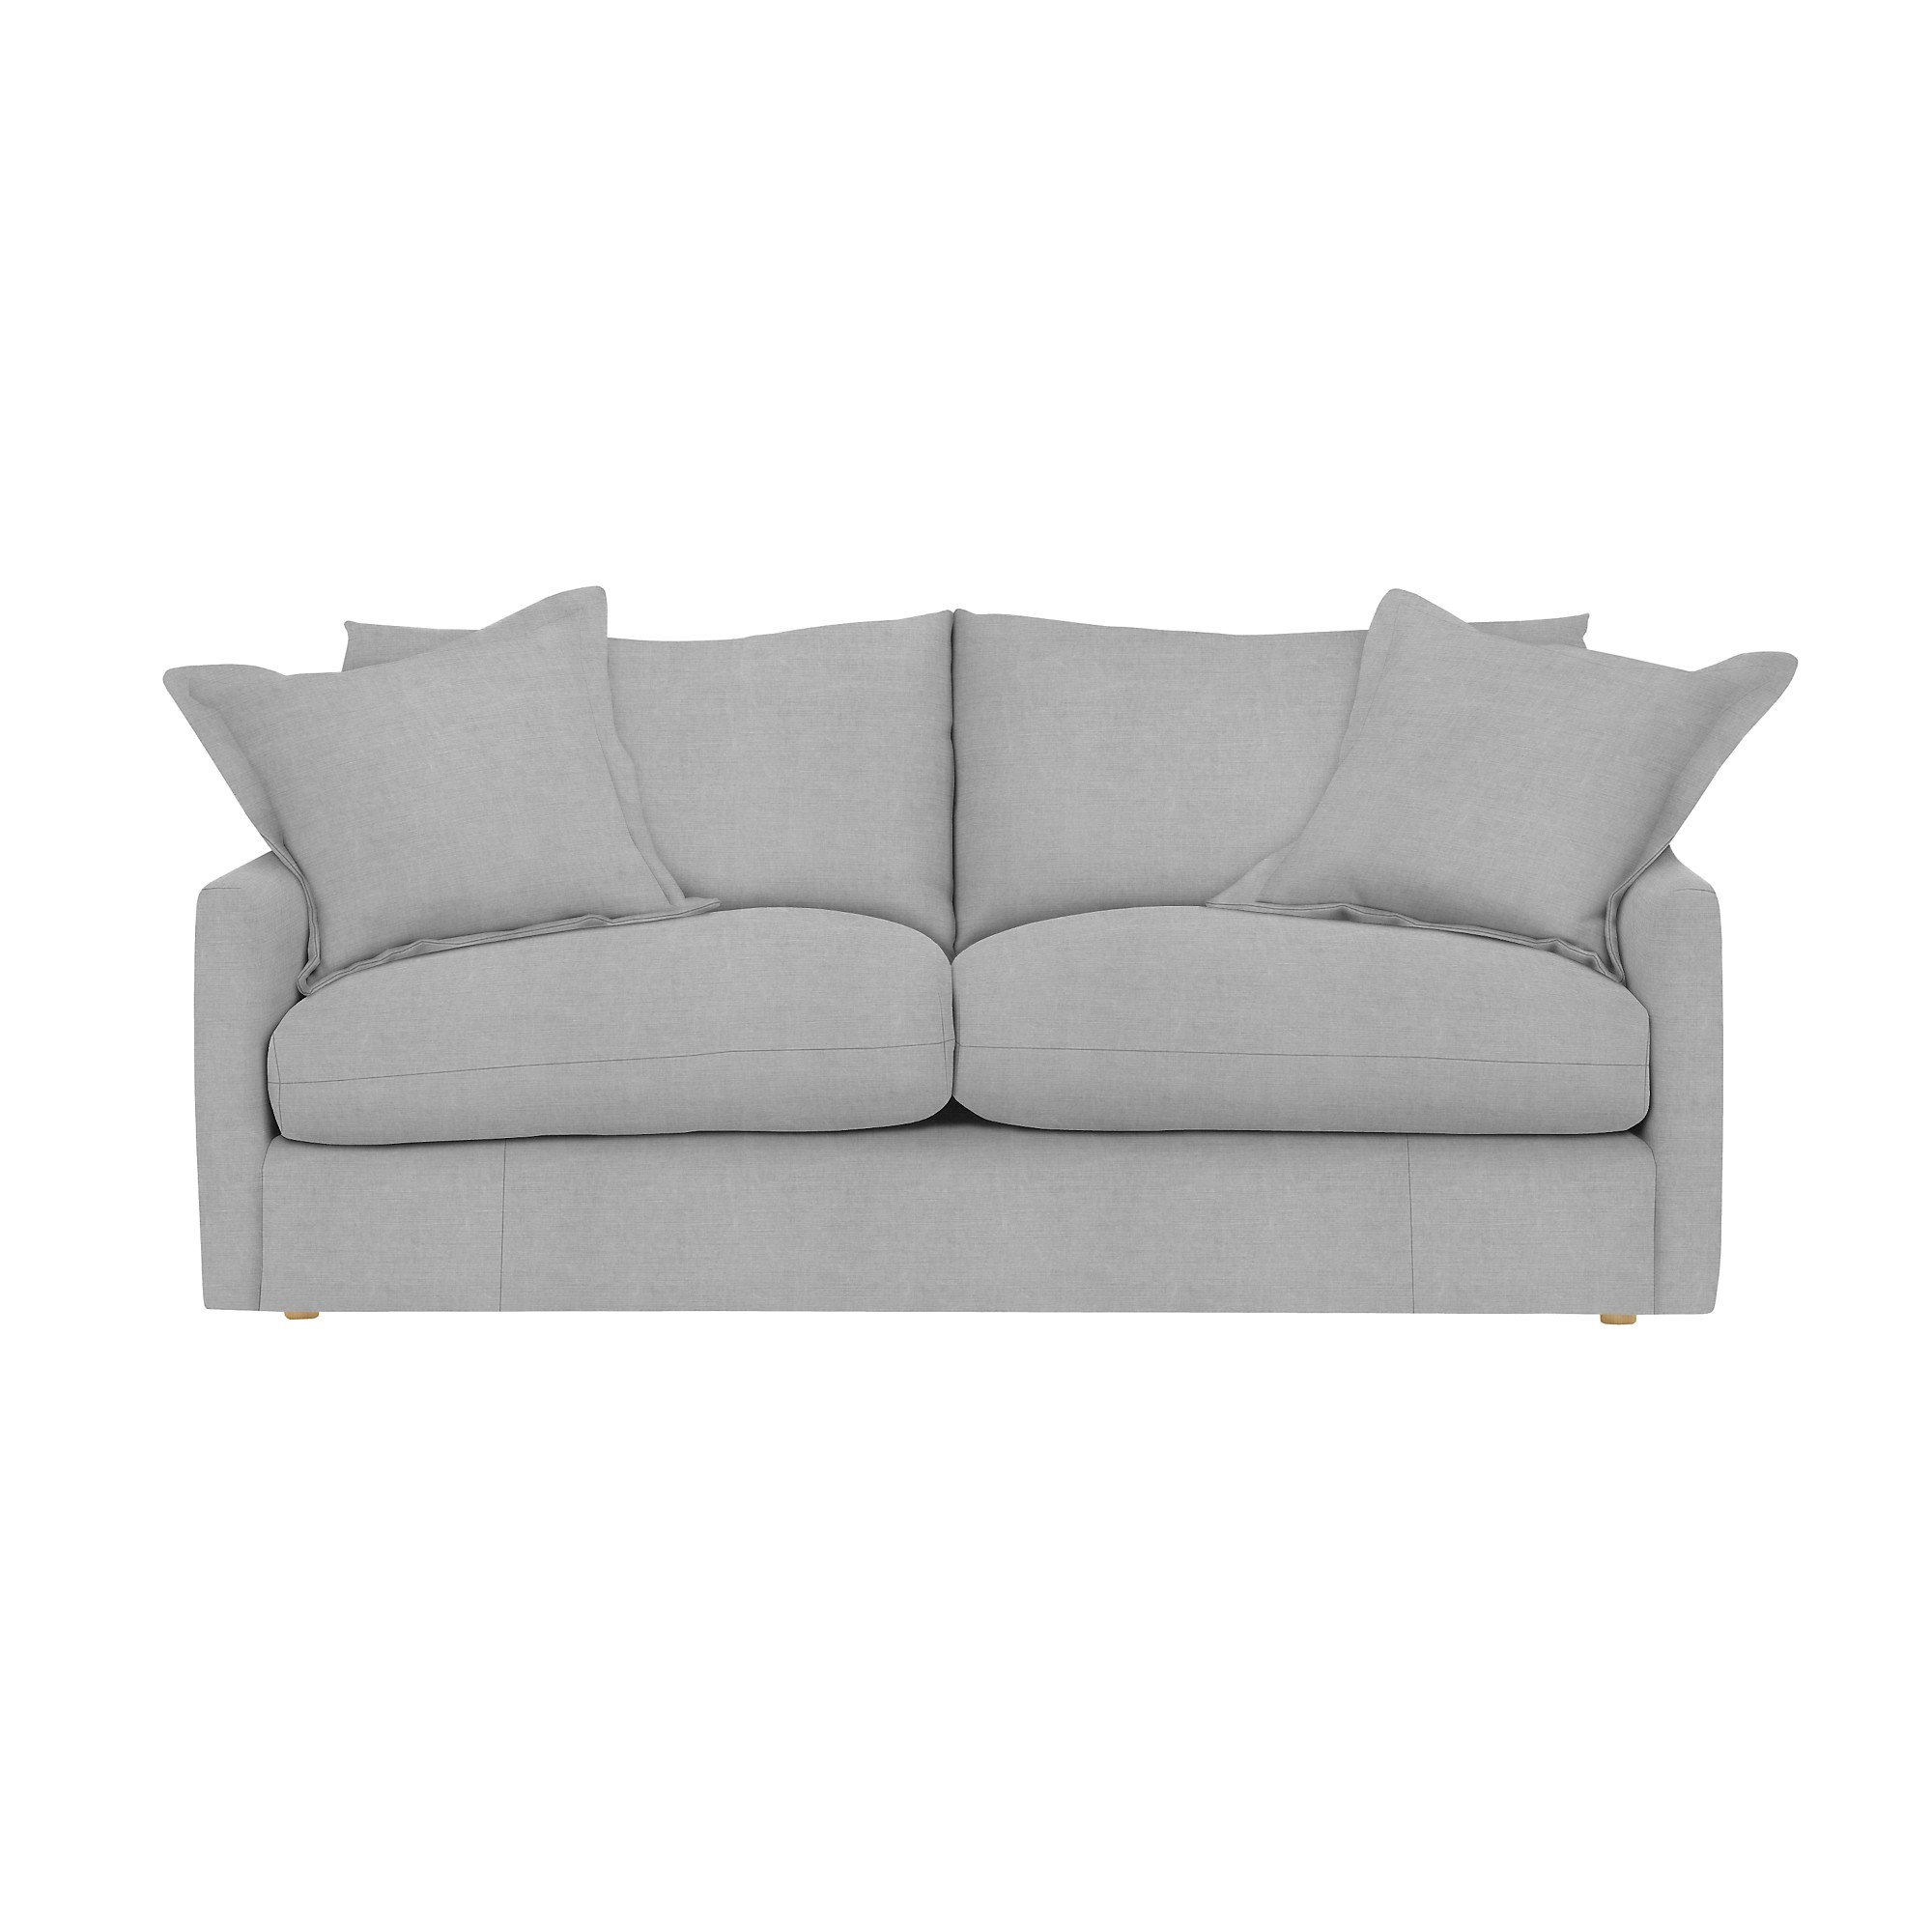 John Lewis Croft Collection Inverness Medium Sofa